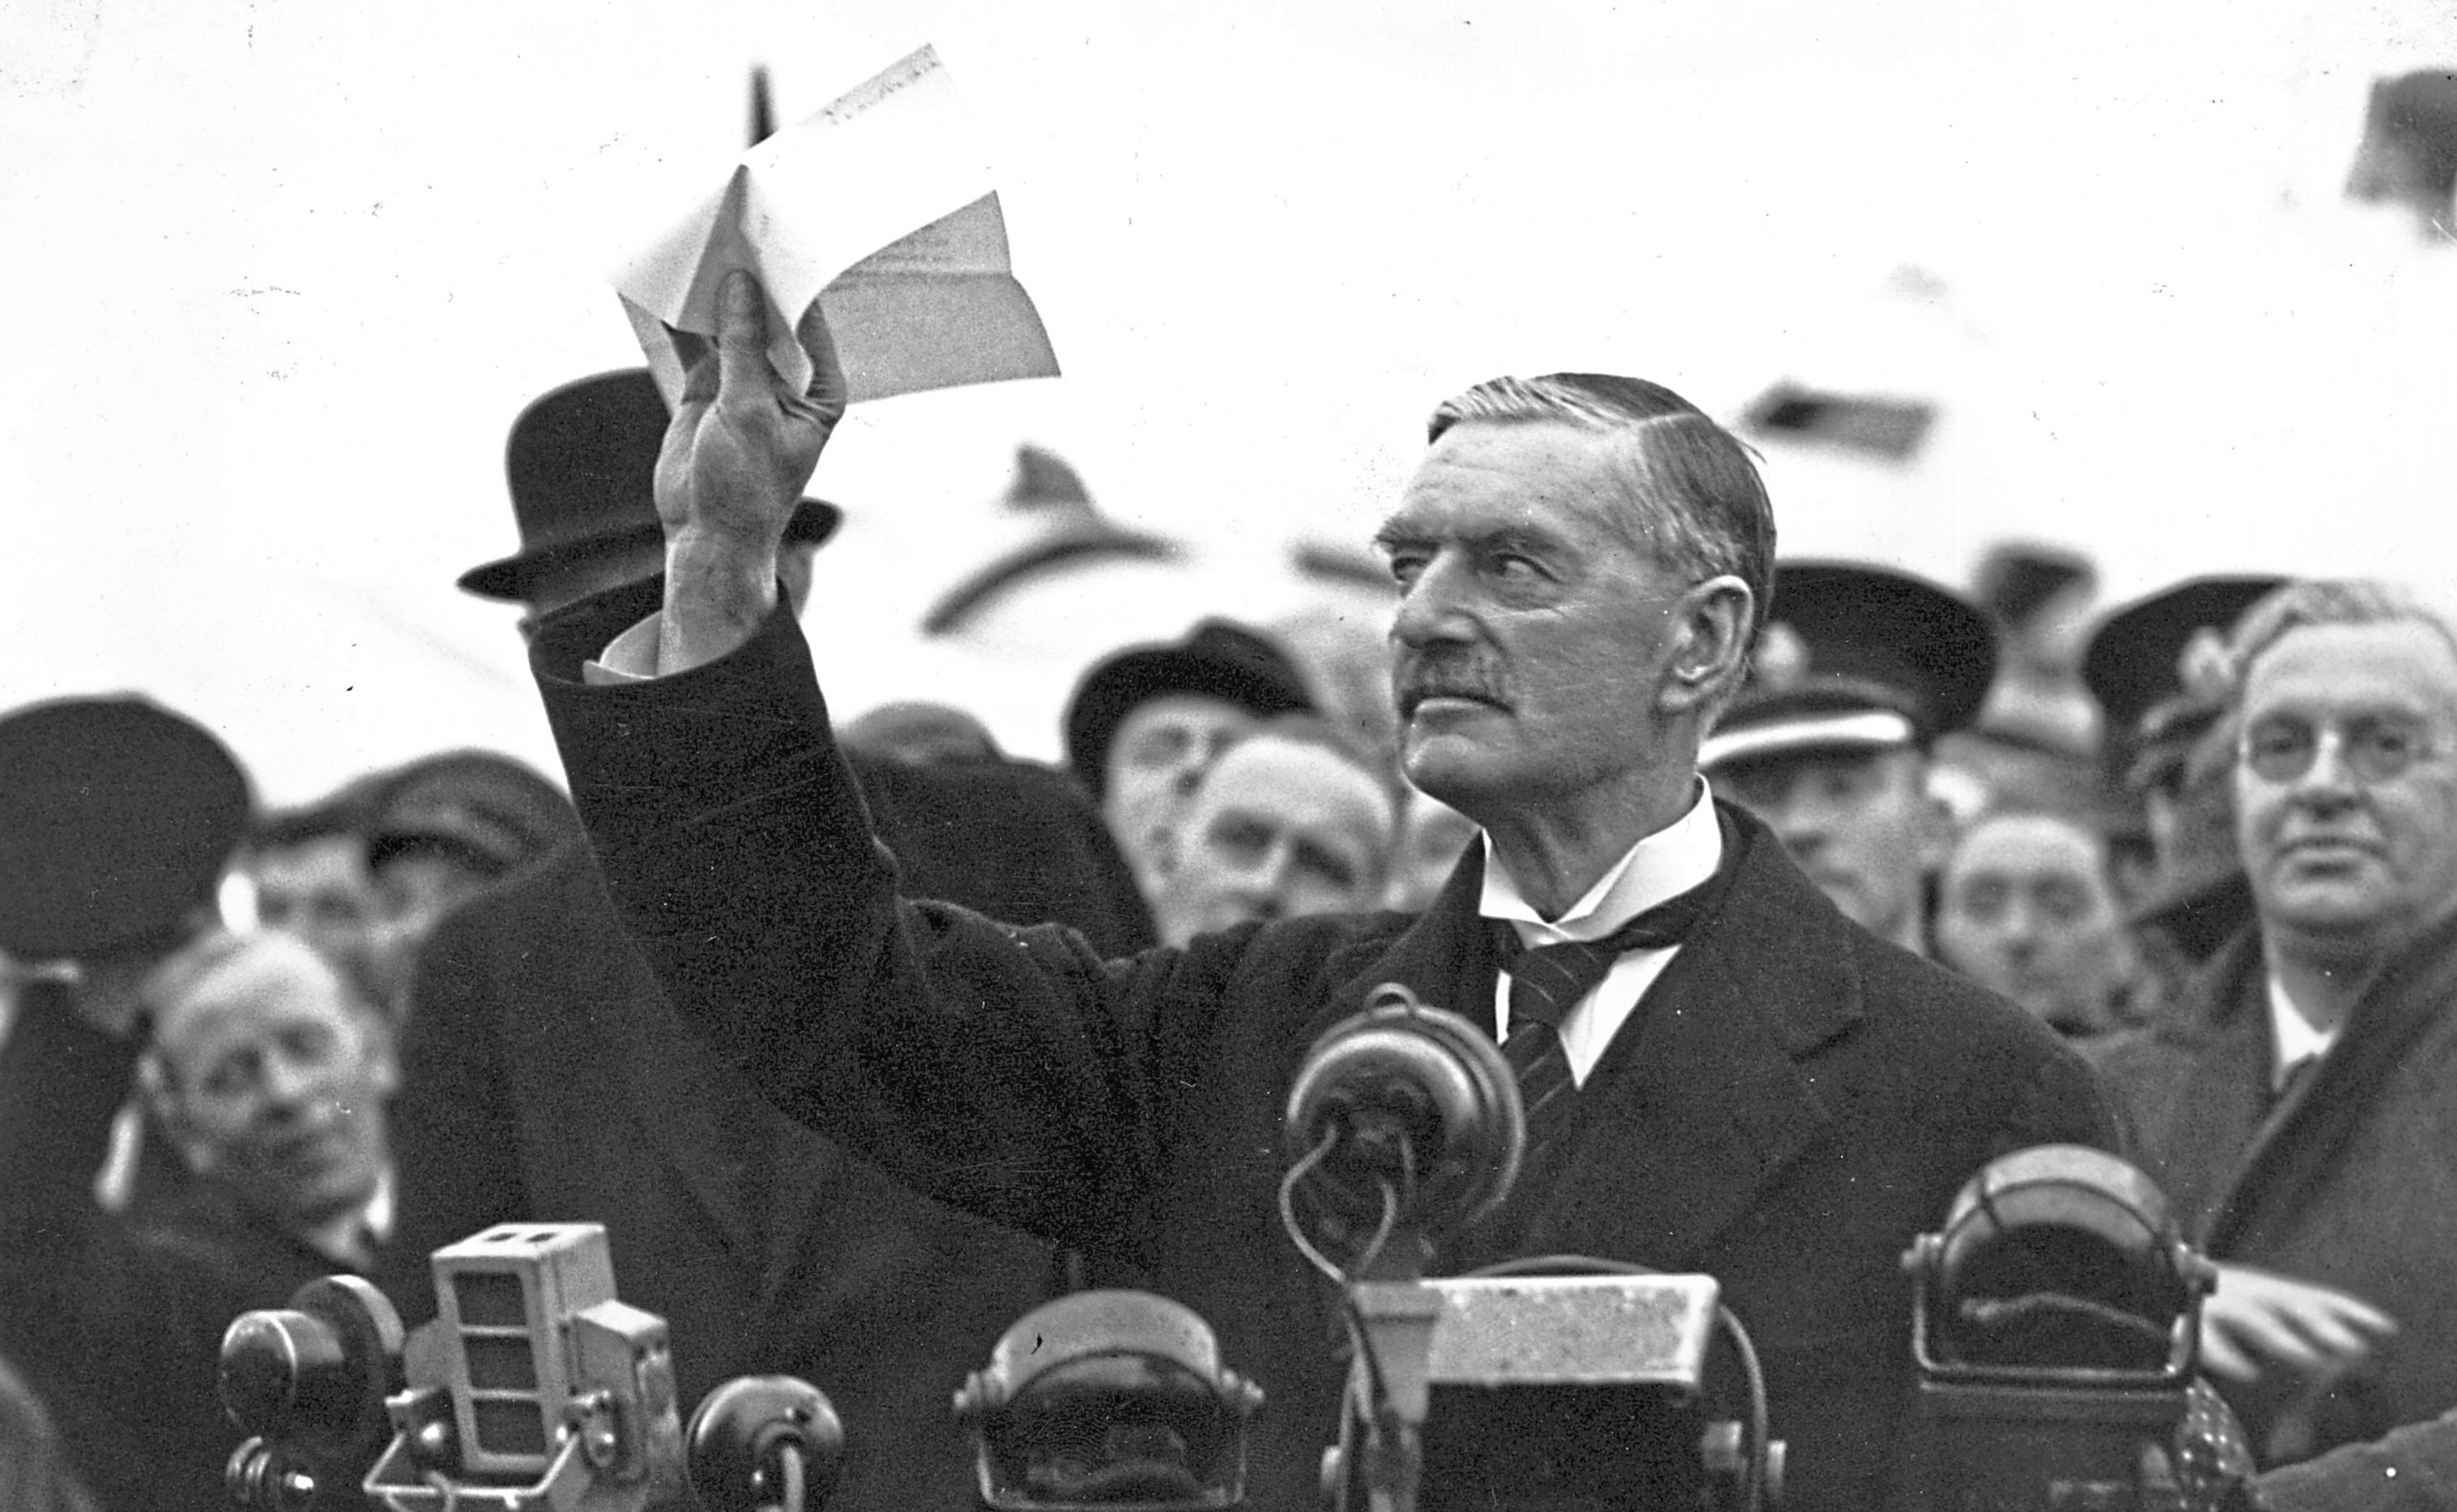 British statesman and prime minister Neville Chamberlain (1869 - 1940) at Heston Airport on his return from Munich after meeting with Hitler, making his 'peace in our time' address.   (Central Press/Getty Images)